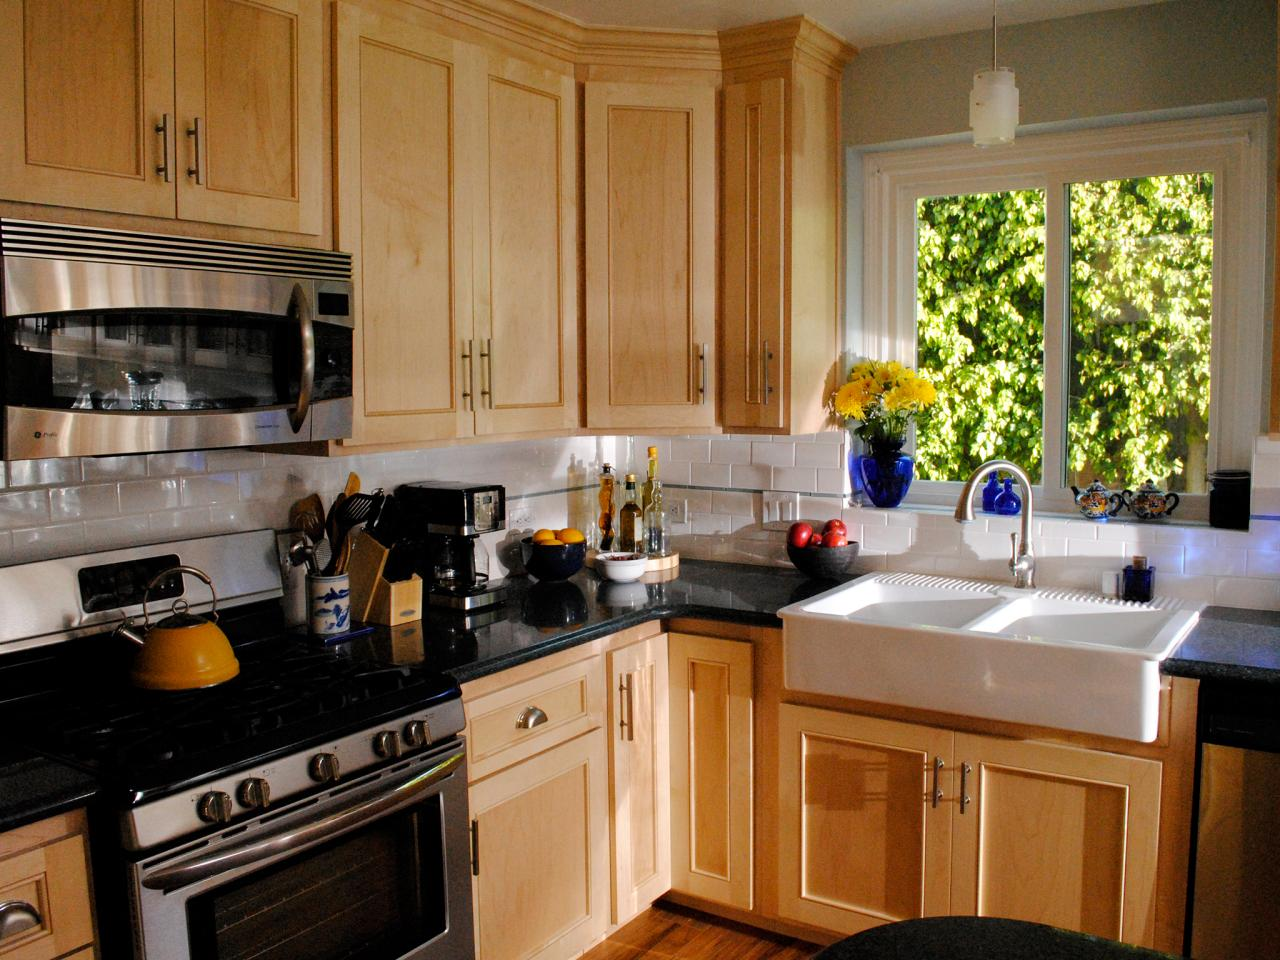 REFACING, REPAINTING, OR REPLACING – WHAT'S THE BEST CHOICE FOR YOUR KITCHEN CABINETS?